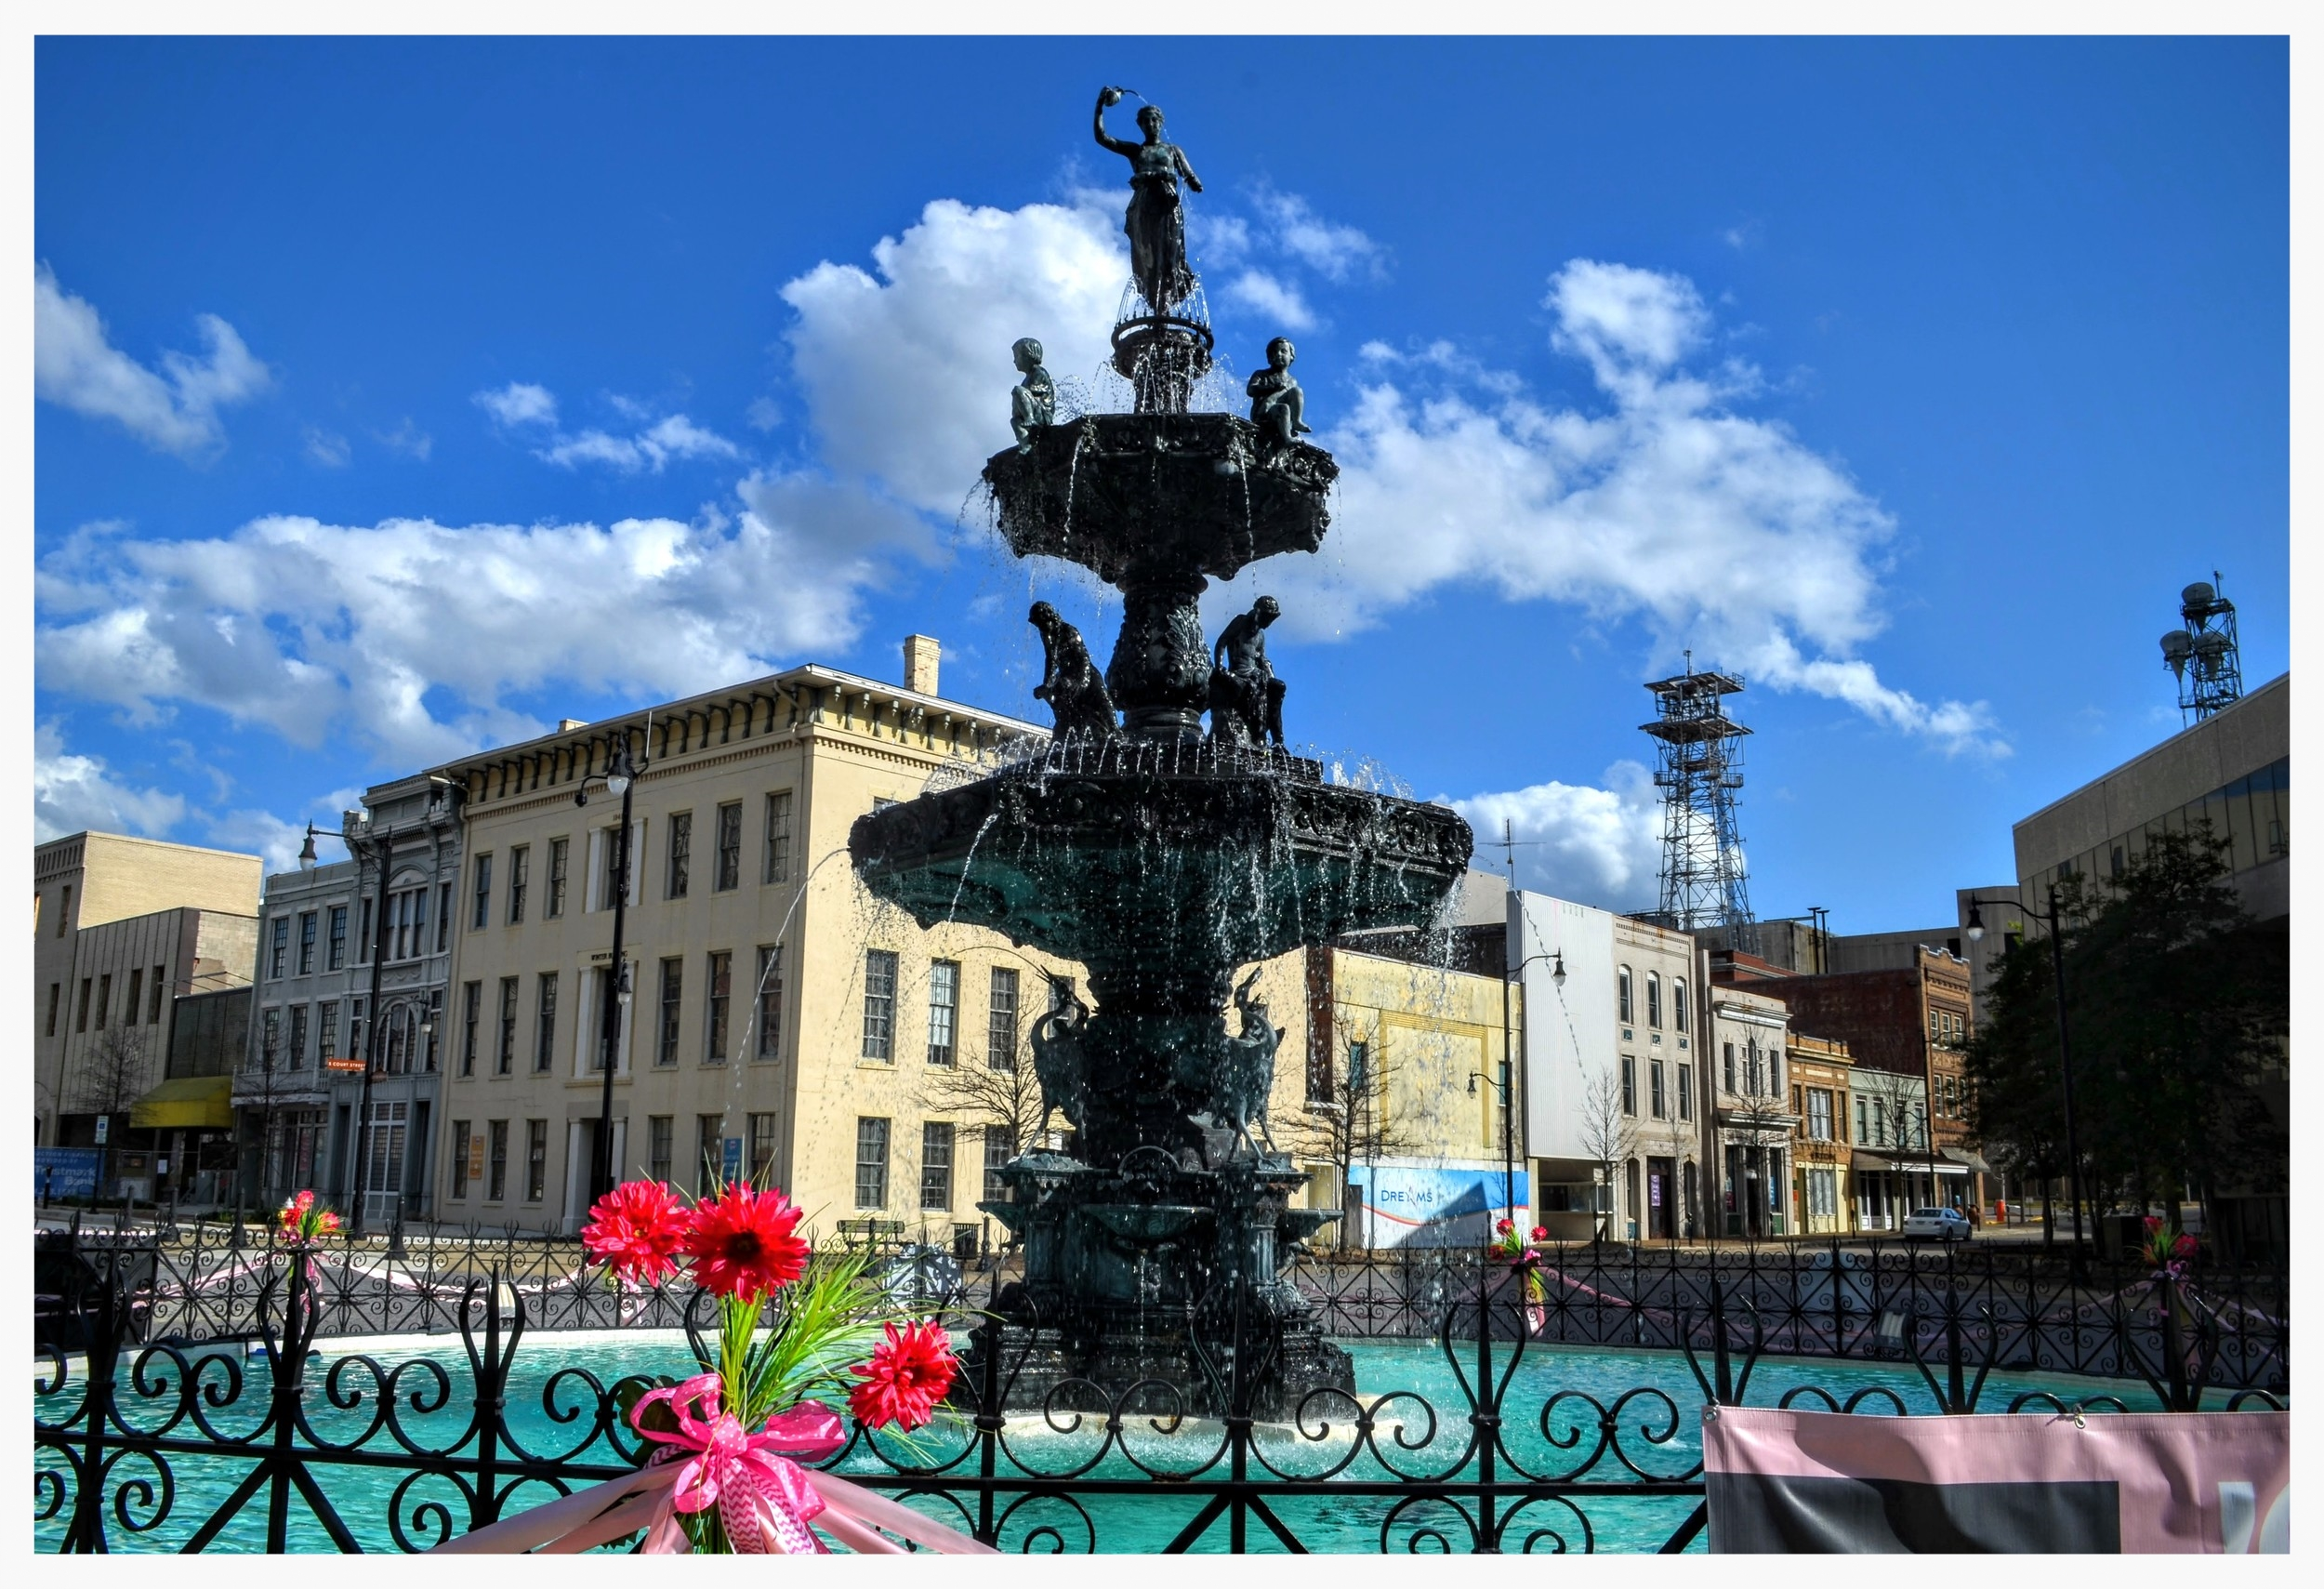 Court Square Fountain, Montgomery, Montgomery County, Alabama